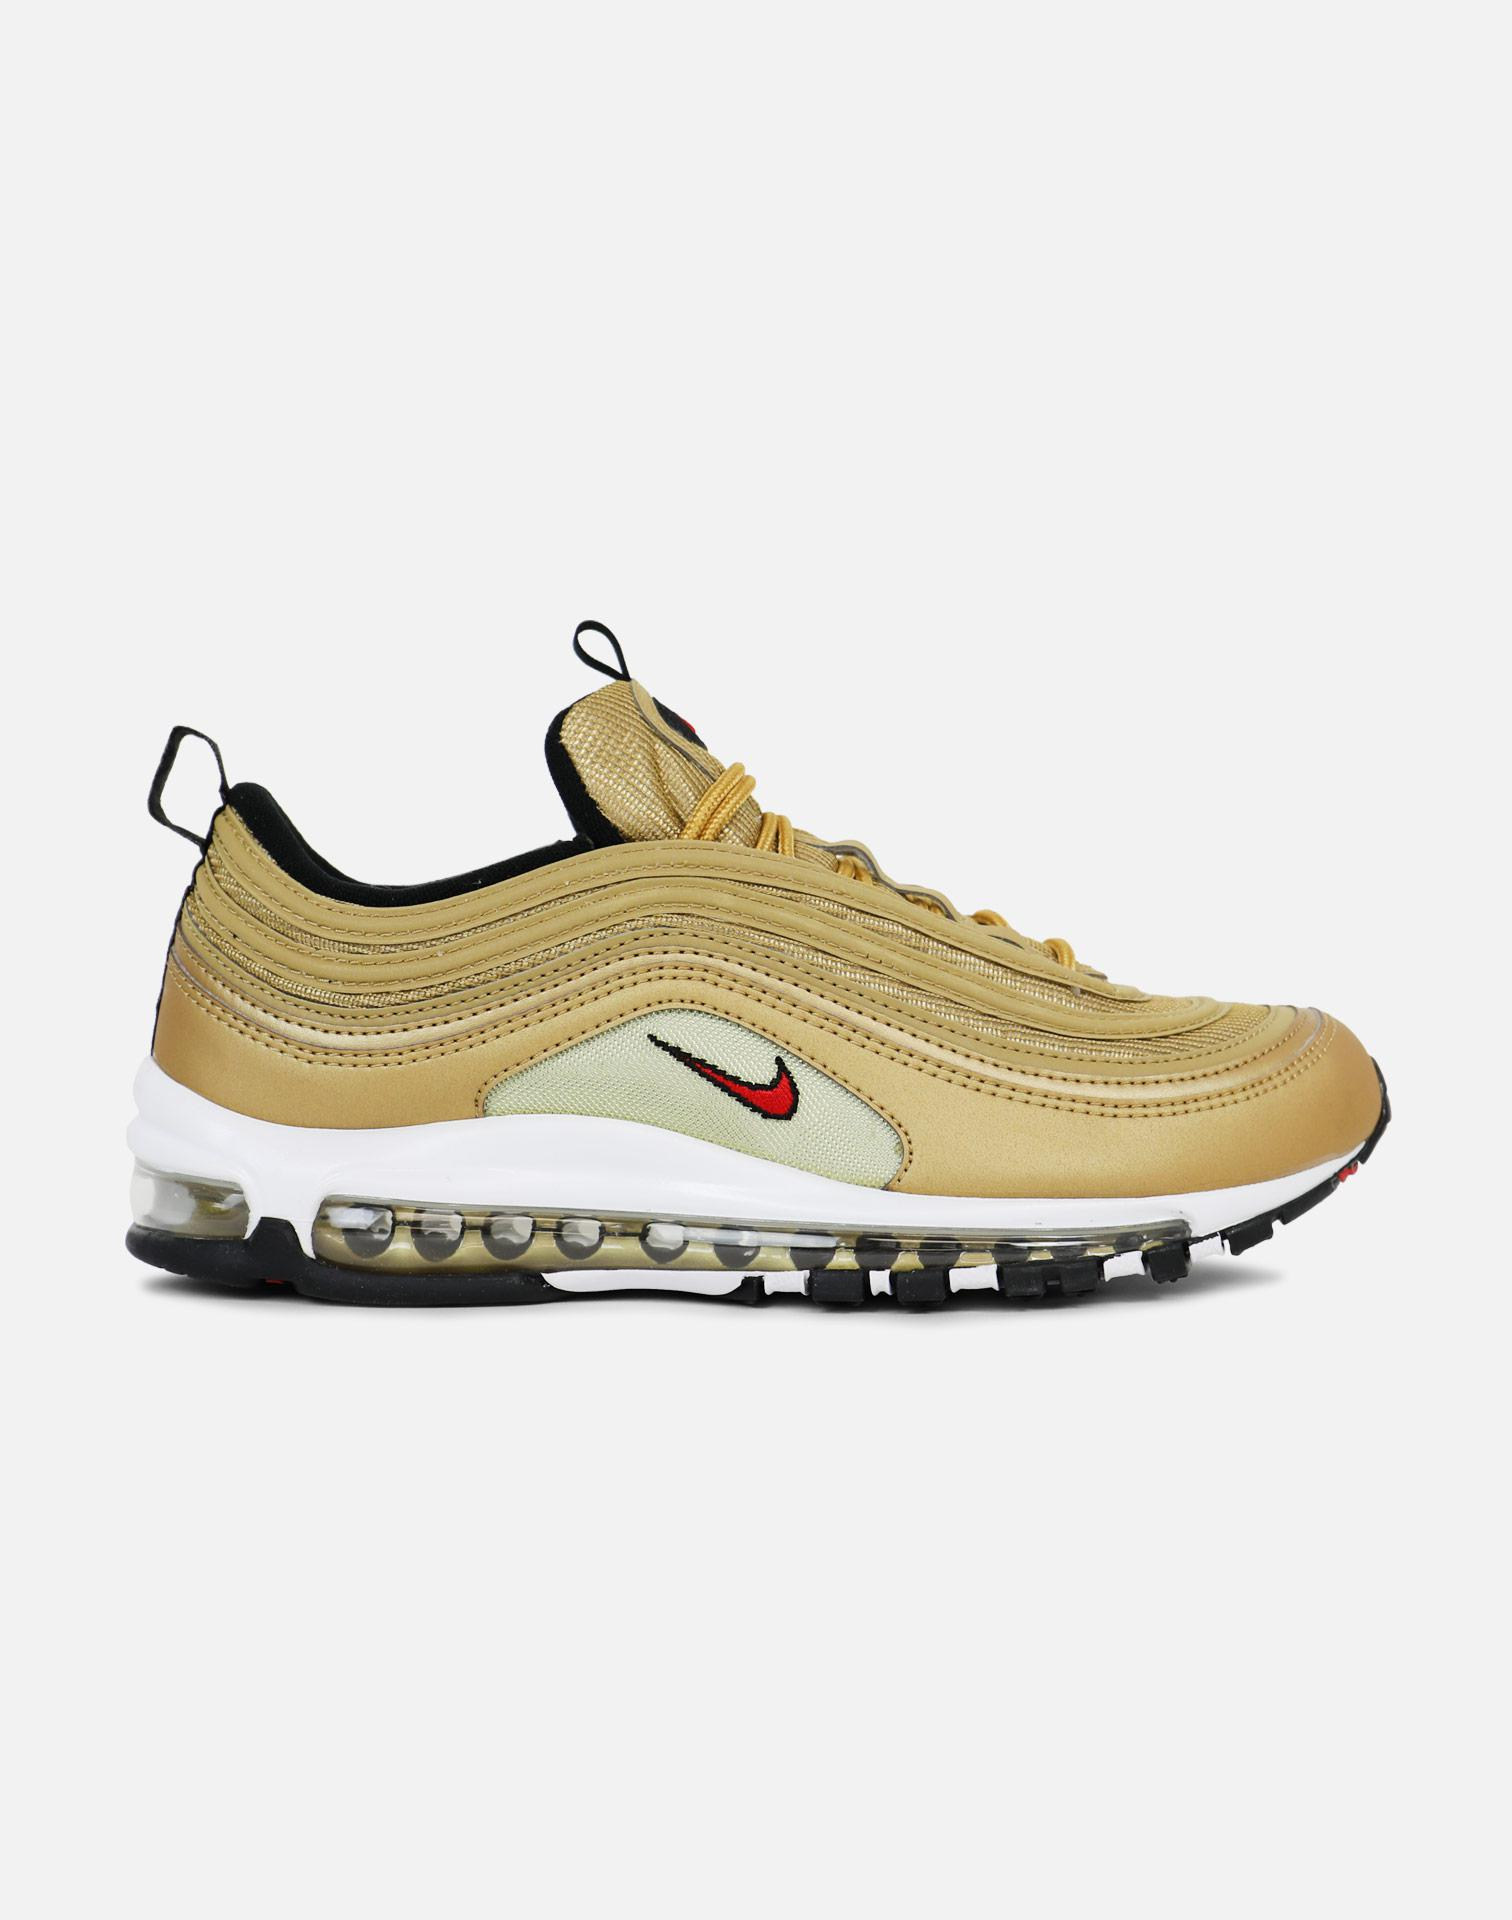 6b9ab981974a86 Lyst - Nike Air Max 97 Og-metallic Gold Varsity Red White Black in ...